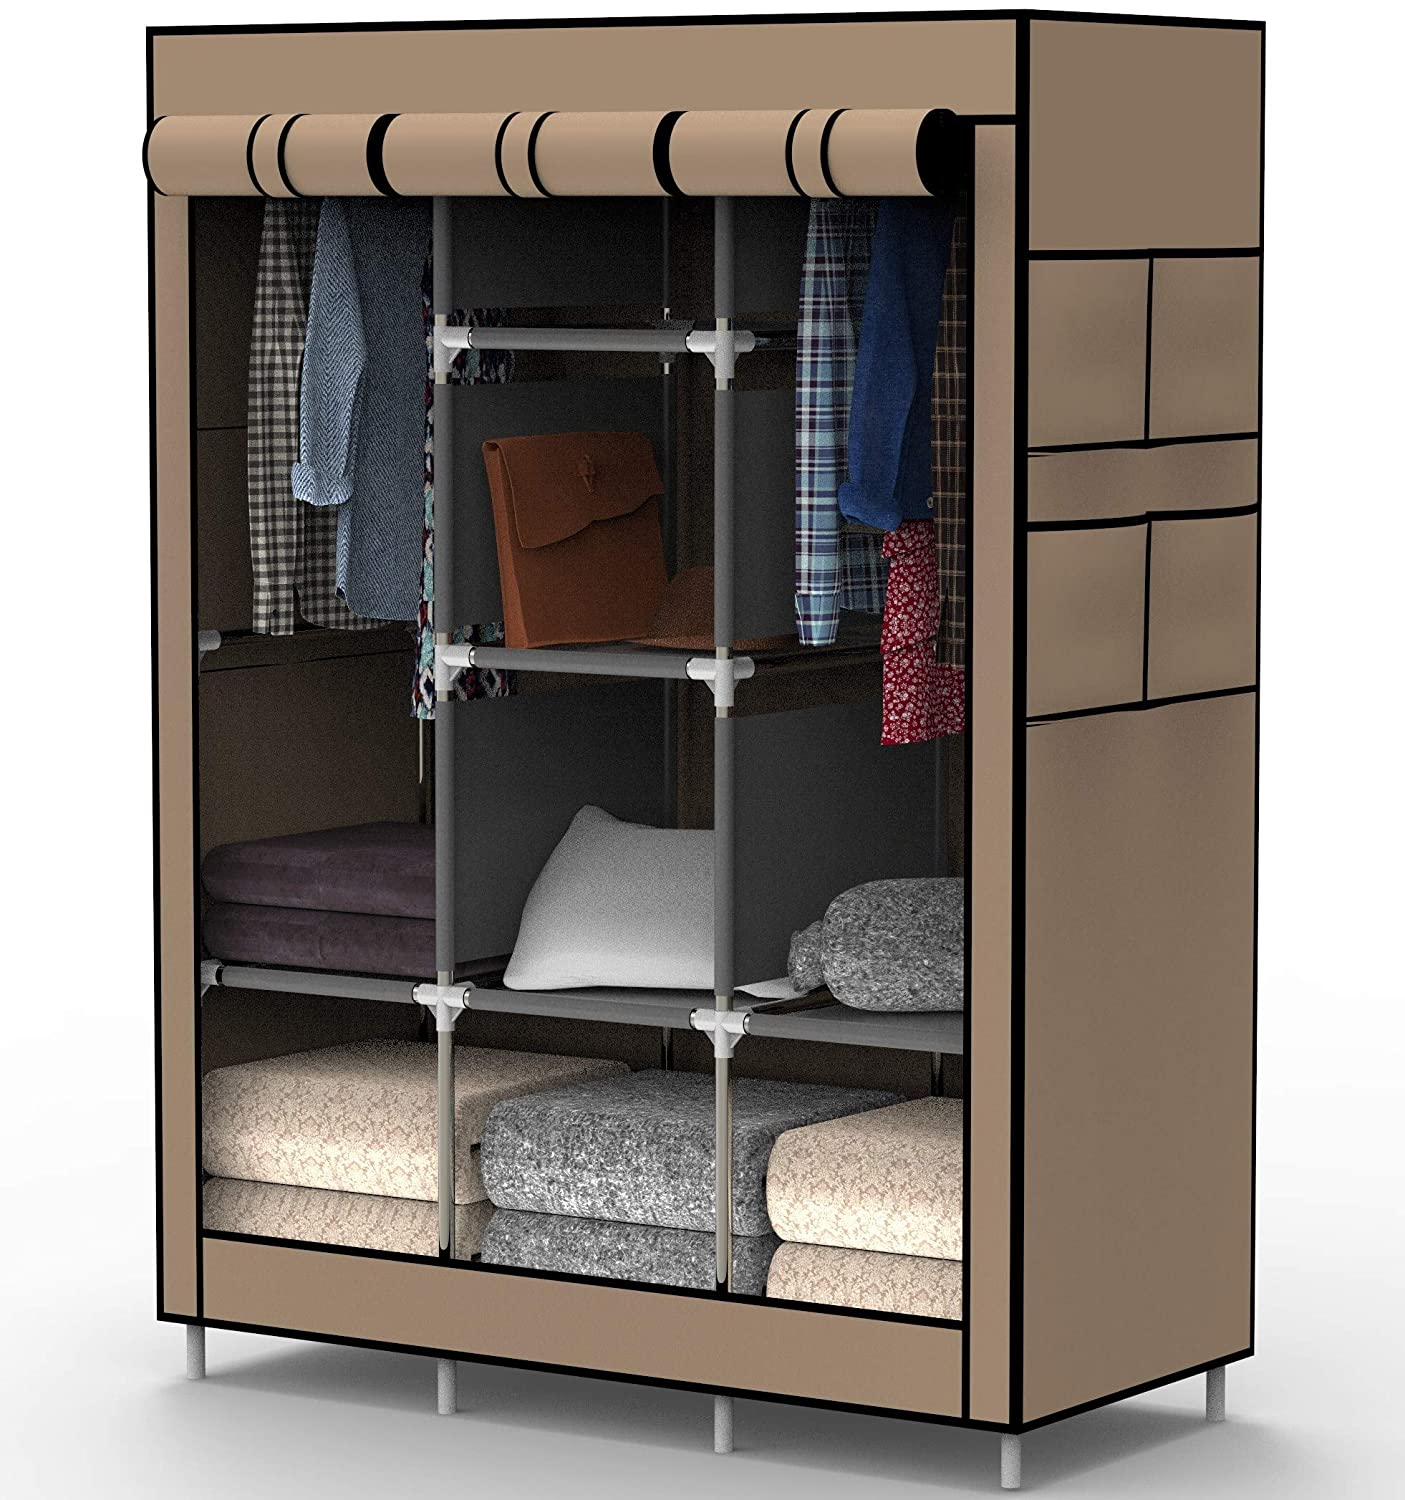 Myouya Clothes Closet Wardrobe - Bedroom Standing Closet Organizer Clothing, Shoes Accessories, 6 Cubes 2 Hanging Sections (Beige)